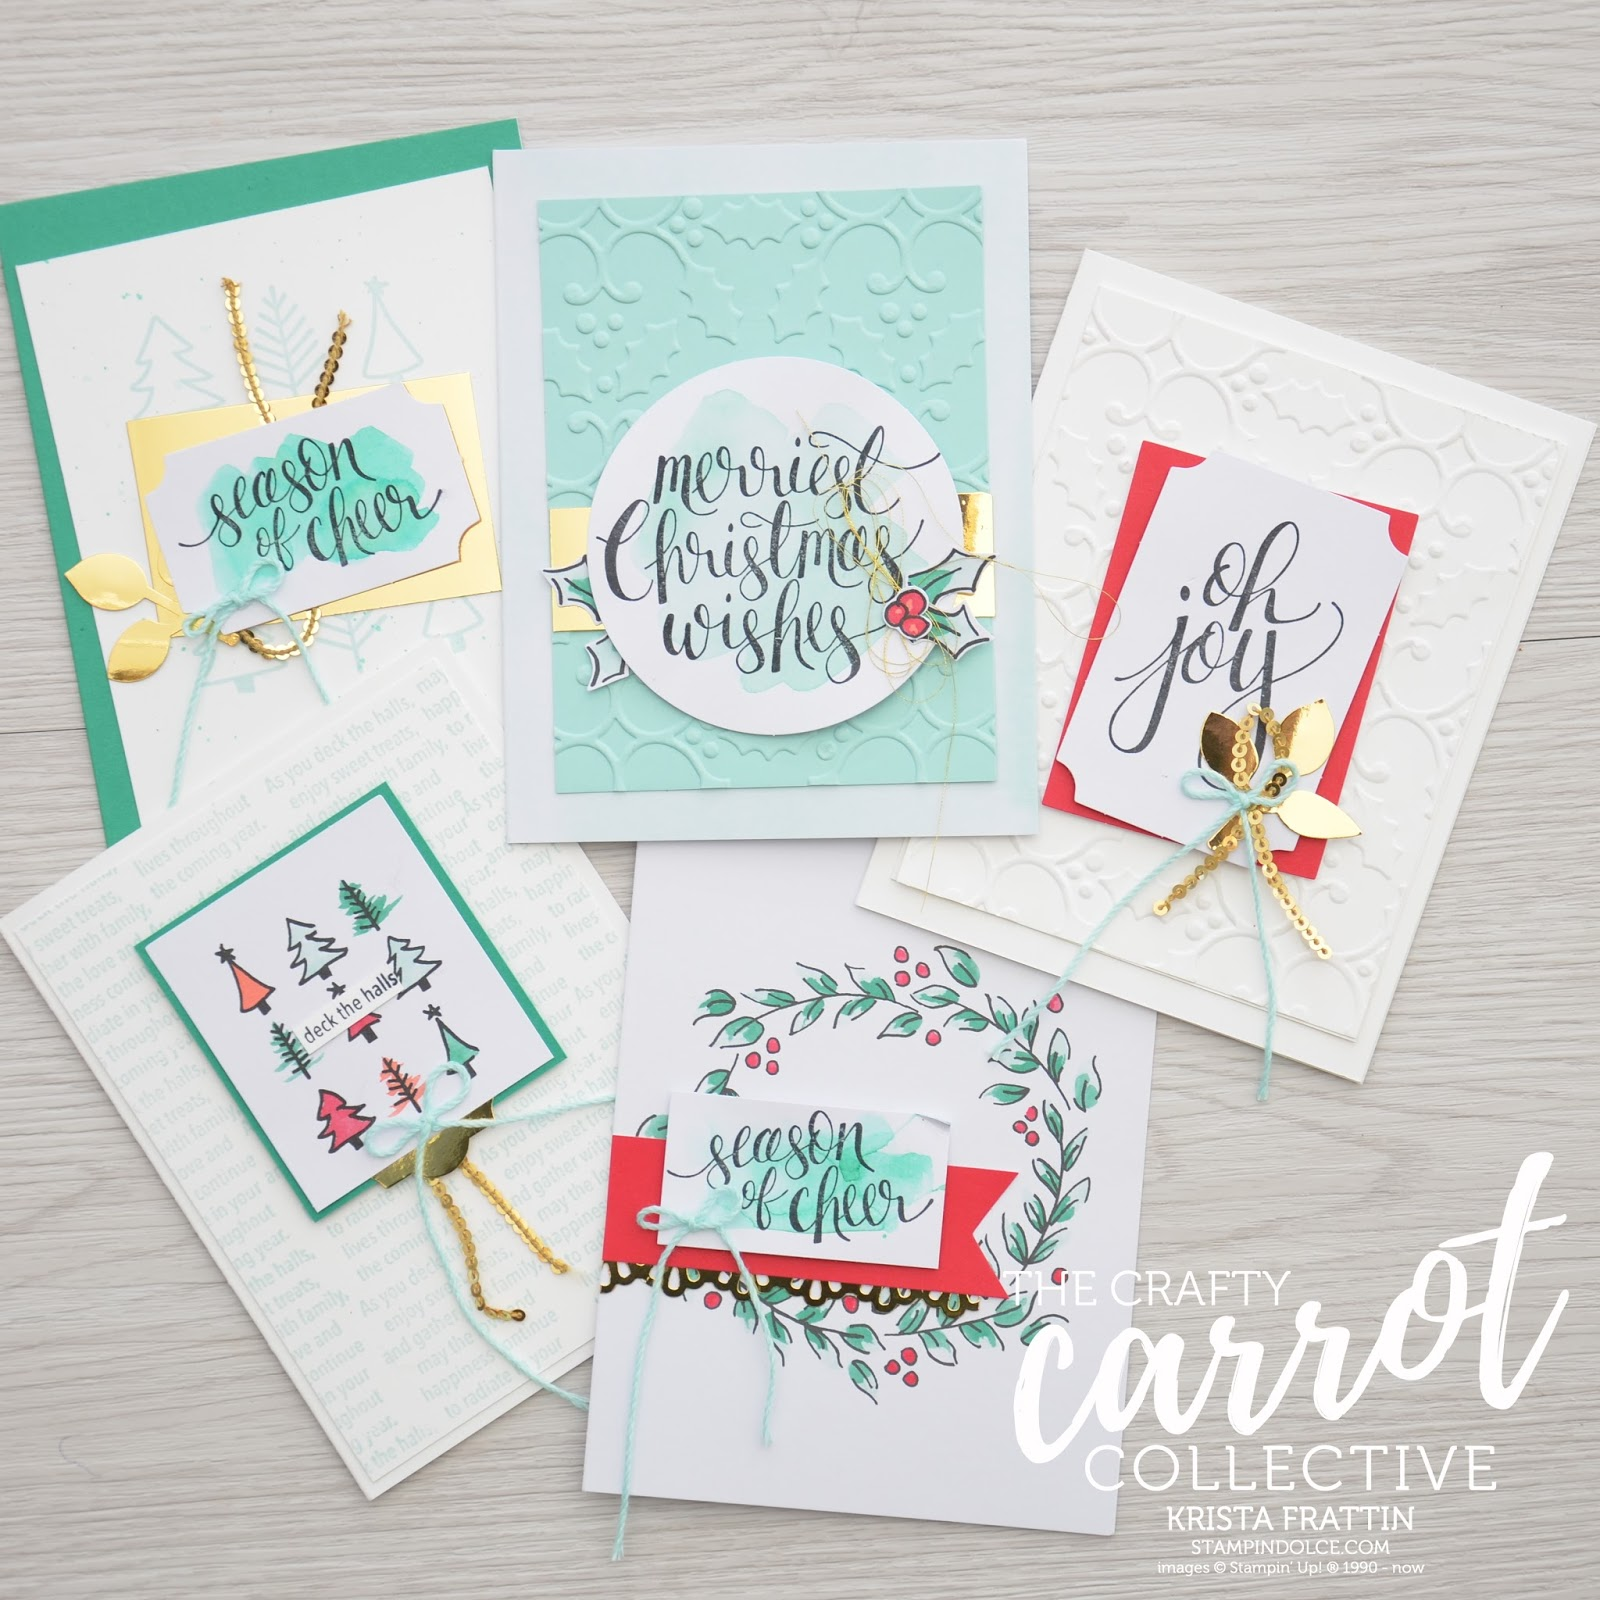 Stampin\' Dolce: Watercolor Christmas - Crafty Carrot Co Blog Hop